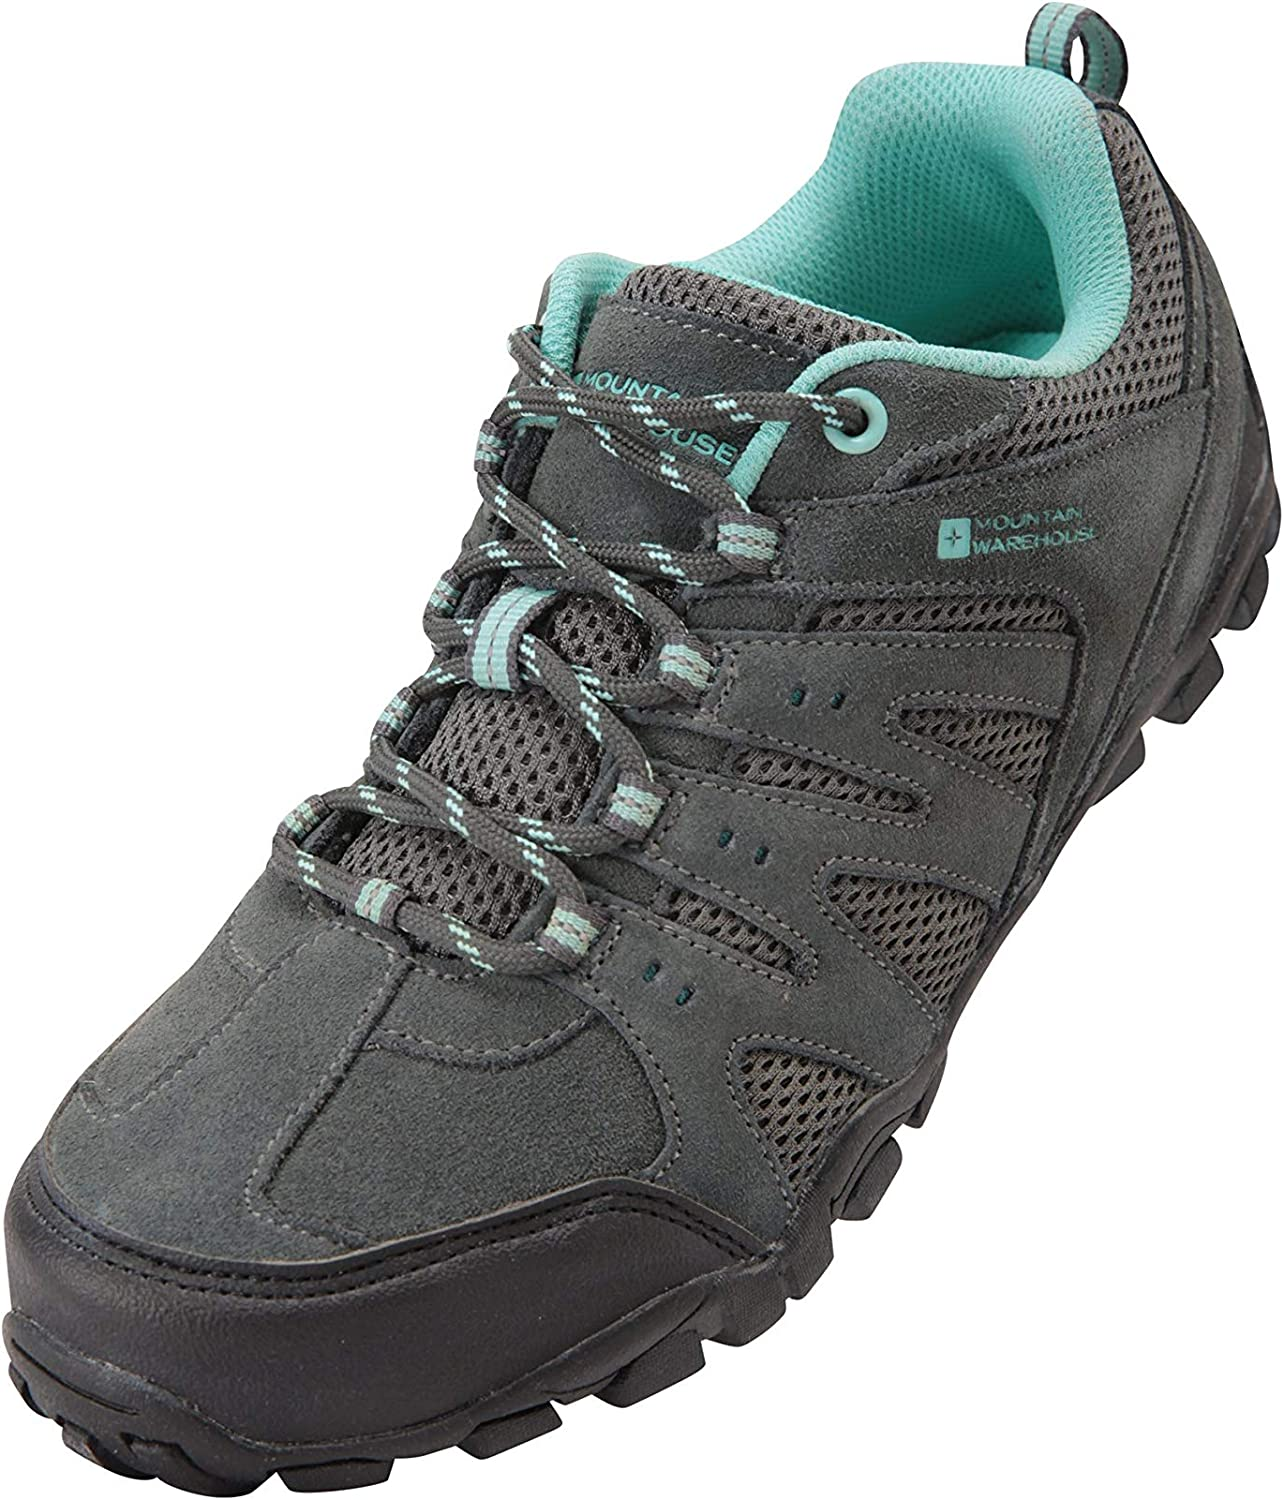 Suede /& Mesh Upper Mountain Warehouse Sherwood Womens Hiking Shoes for Walking Mesh Lined Trainers